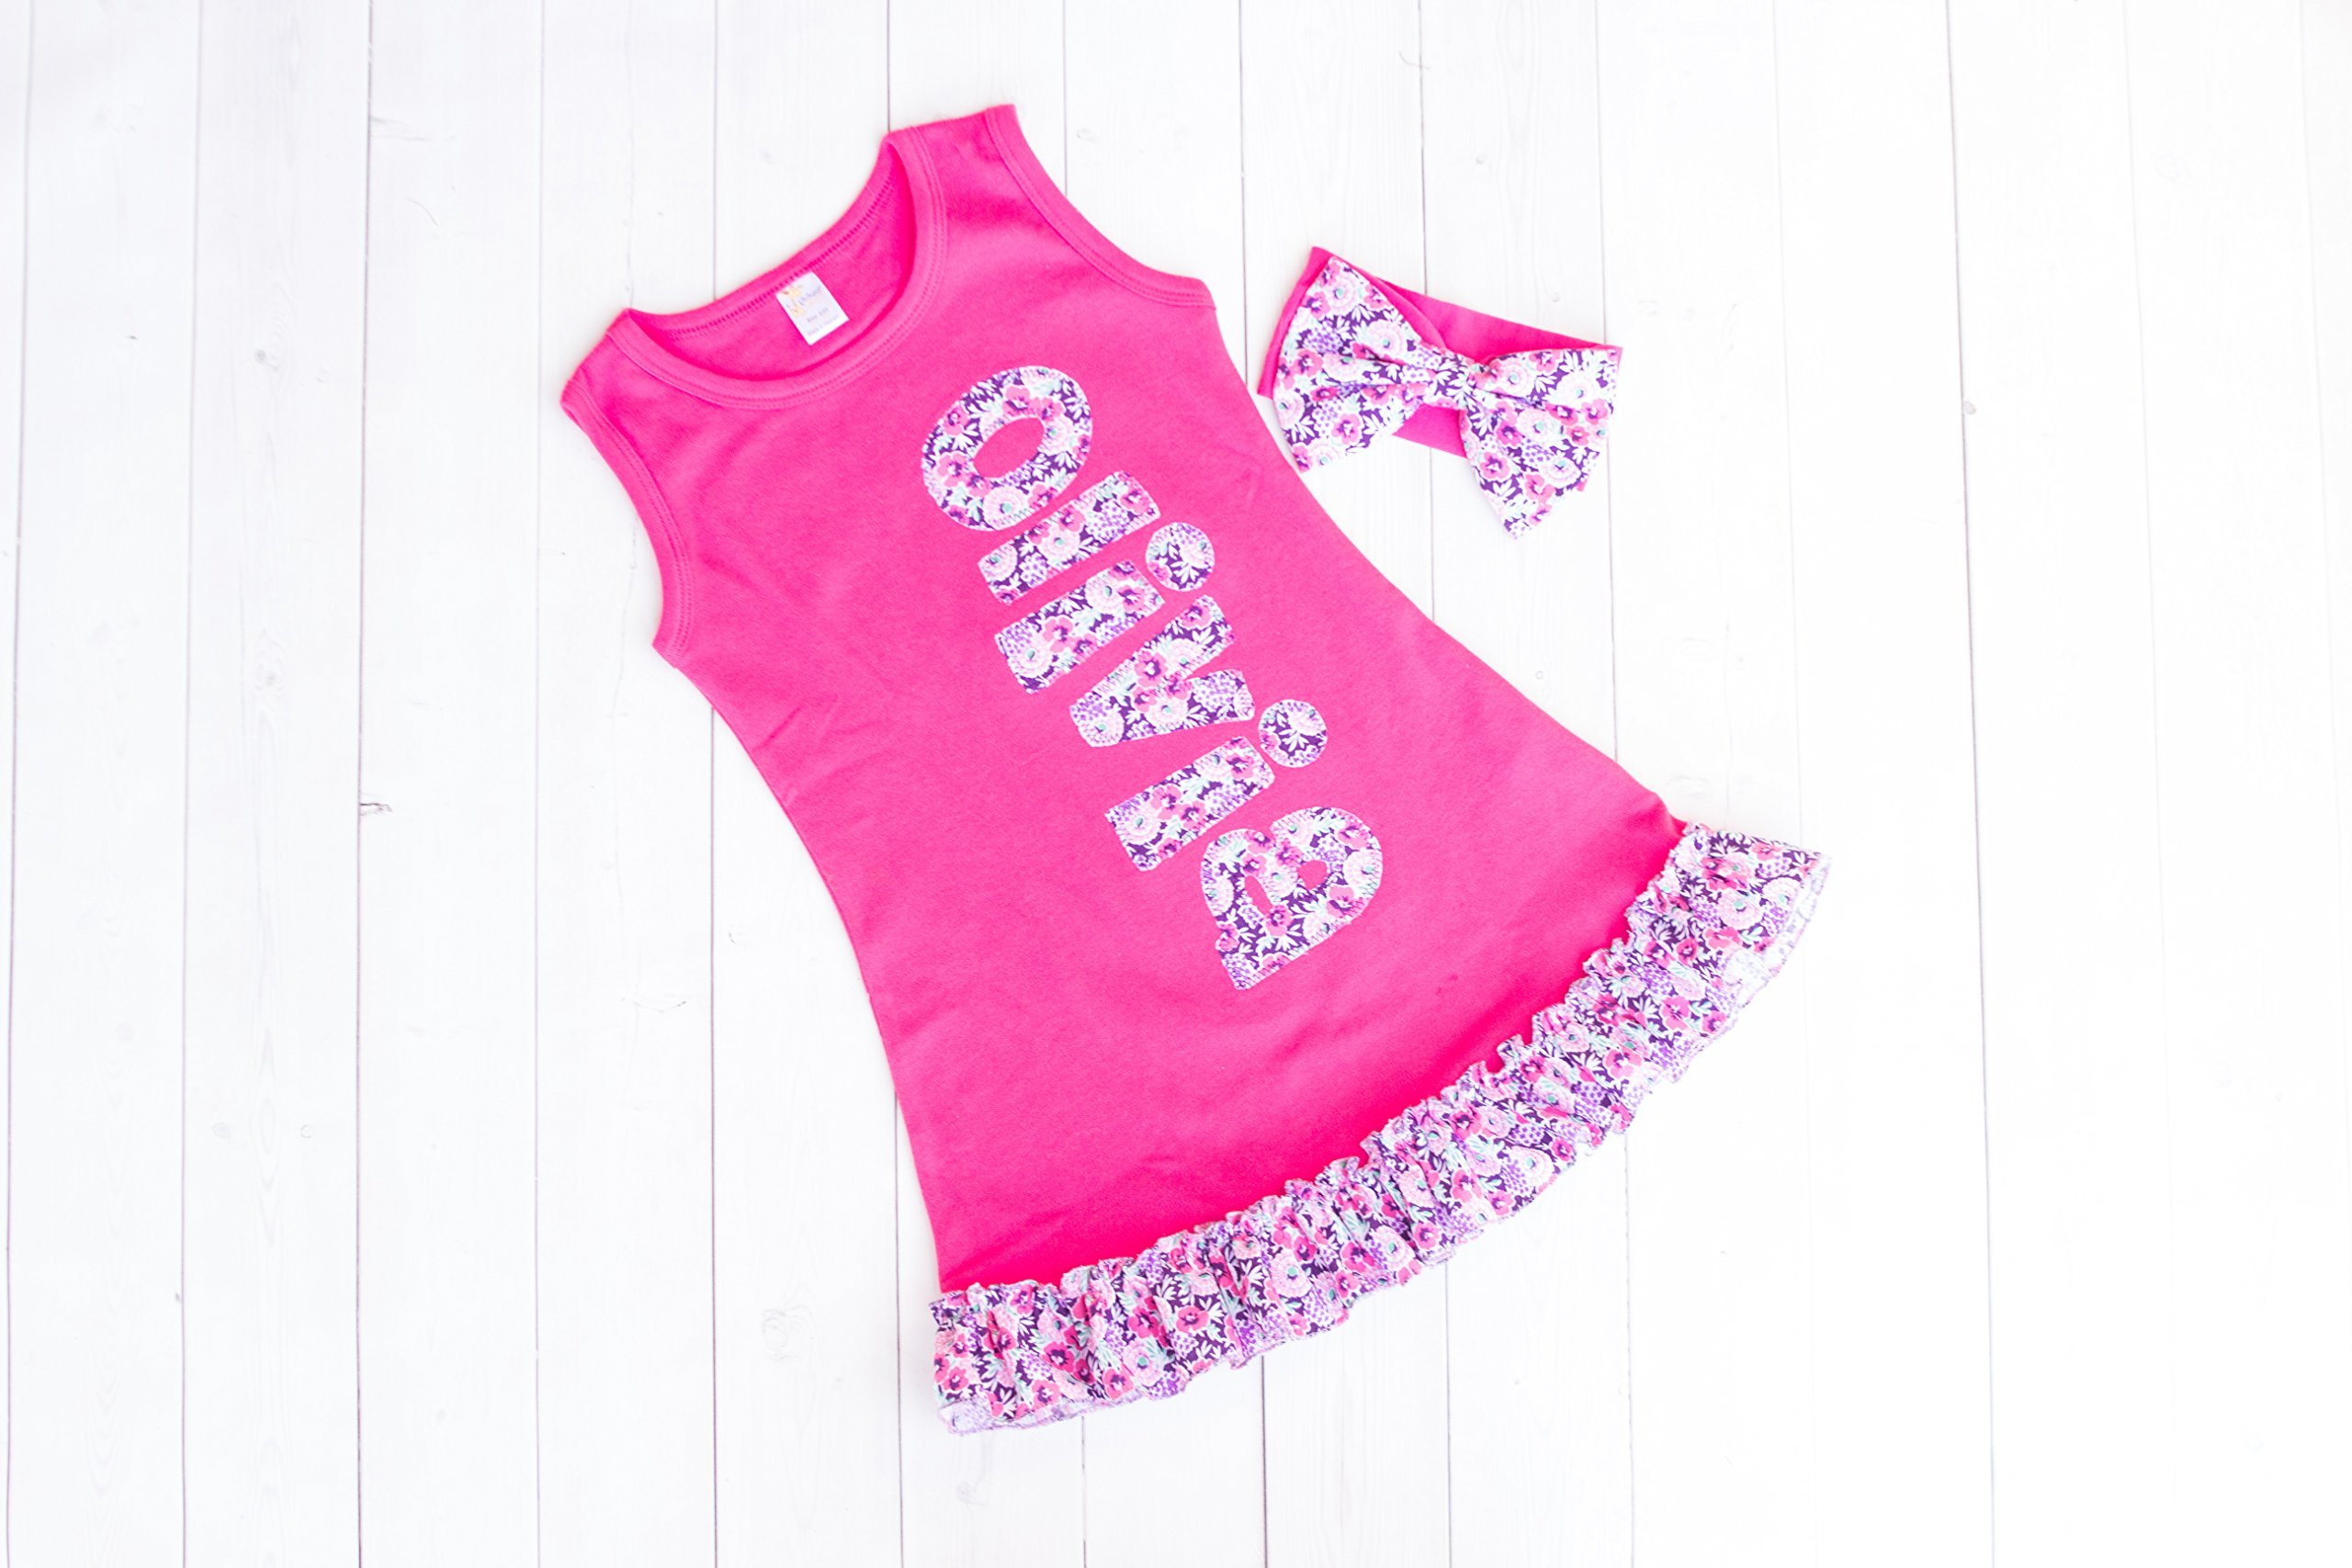 Girl's Fuchsia Personalized Ruffle Dress by Thready Teddy Embroidery - Floral Monogram - Custom Swimming Cover - Embroidered Beach Wear - Cute Name Summer Spring Outfit